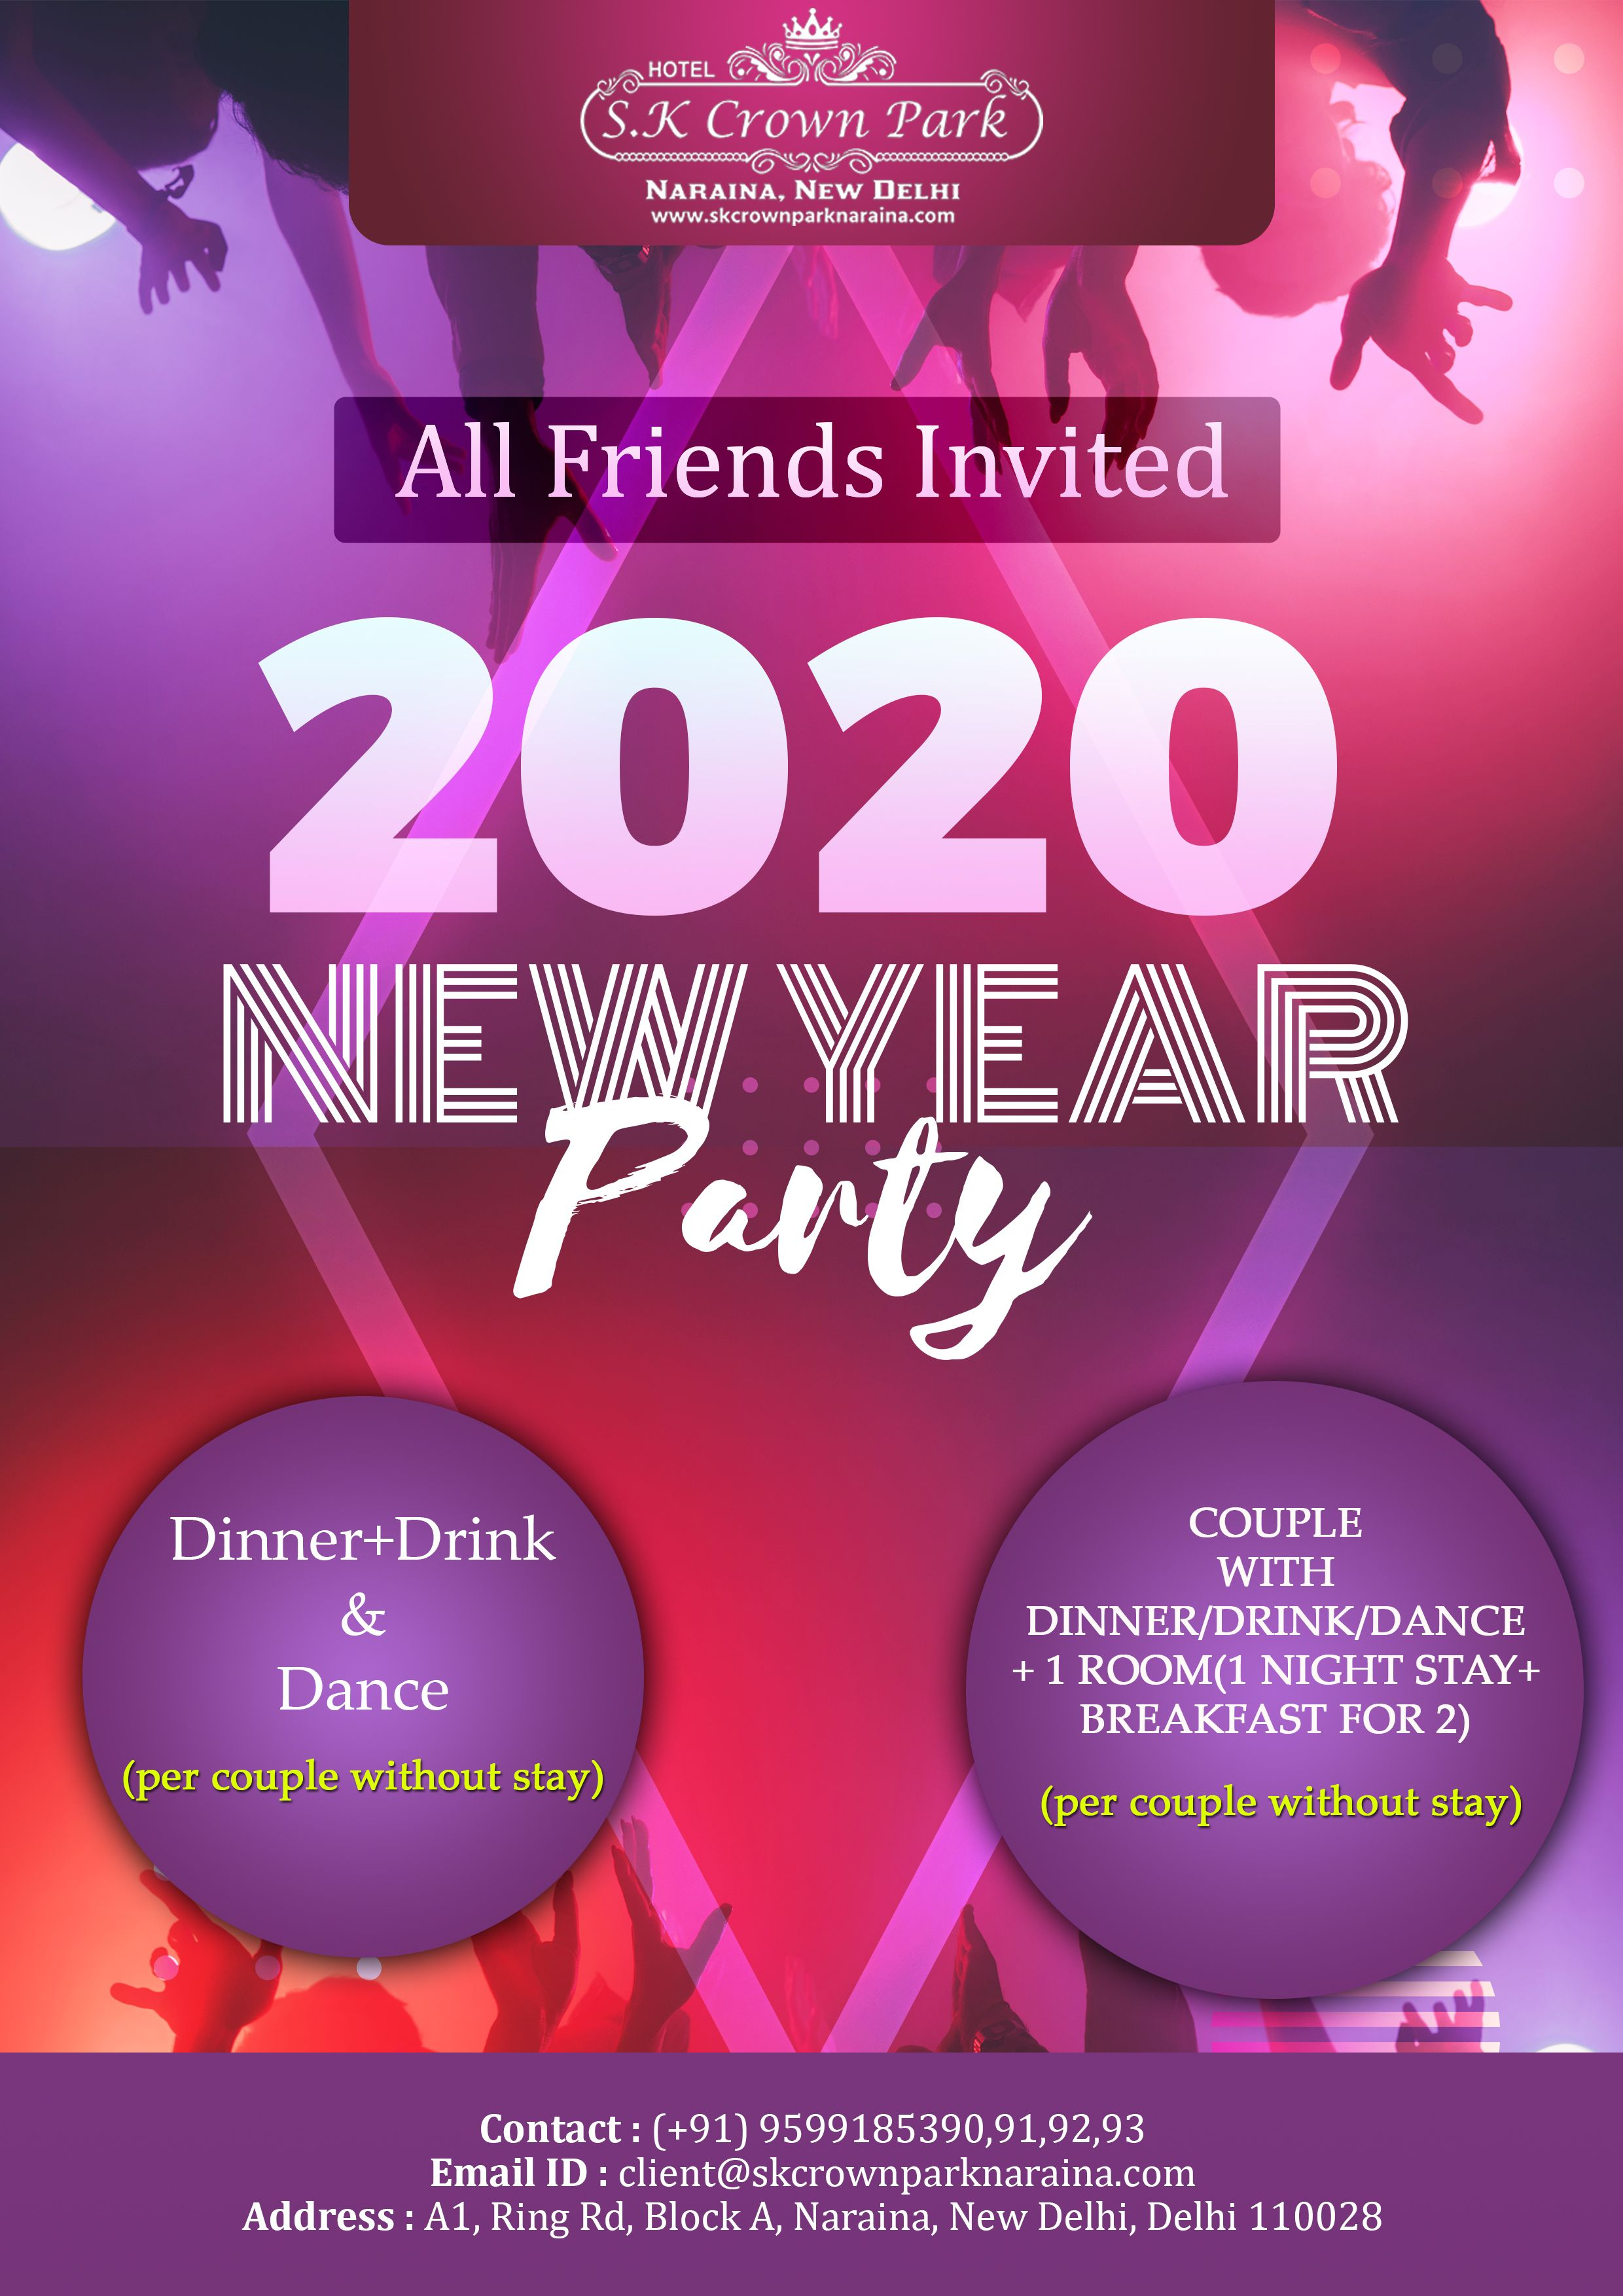 New Year Party 2020 Couples Dinner Hotel Reception How To Memorize Things